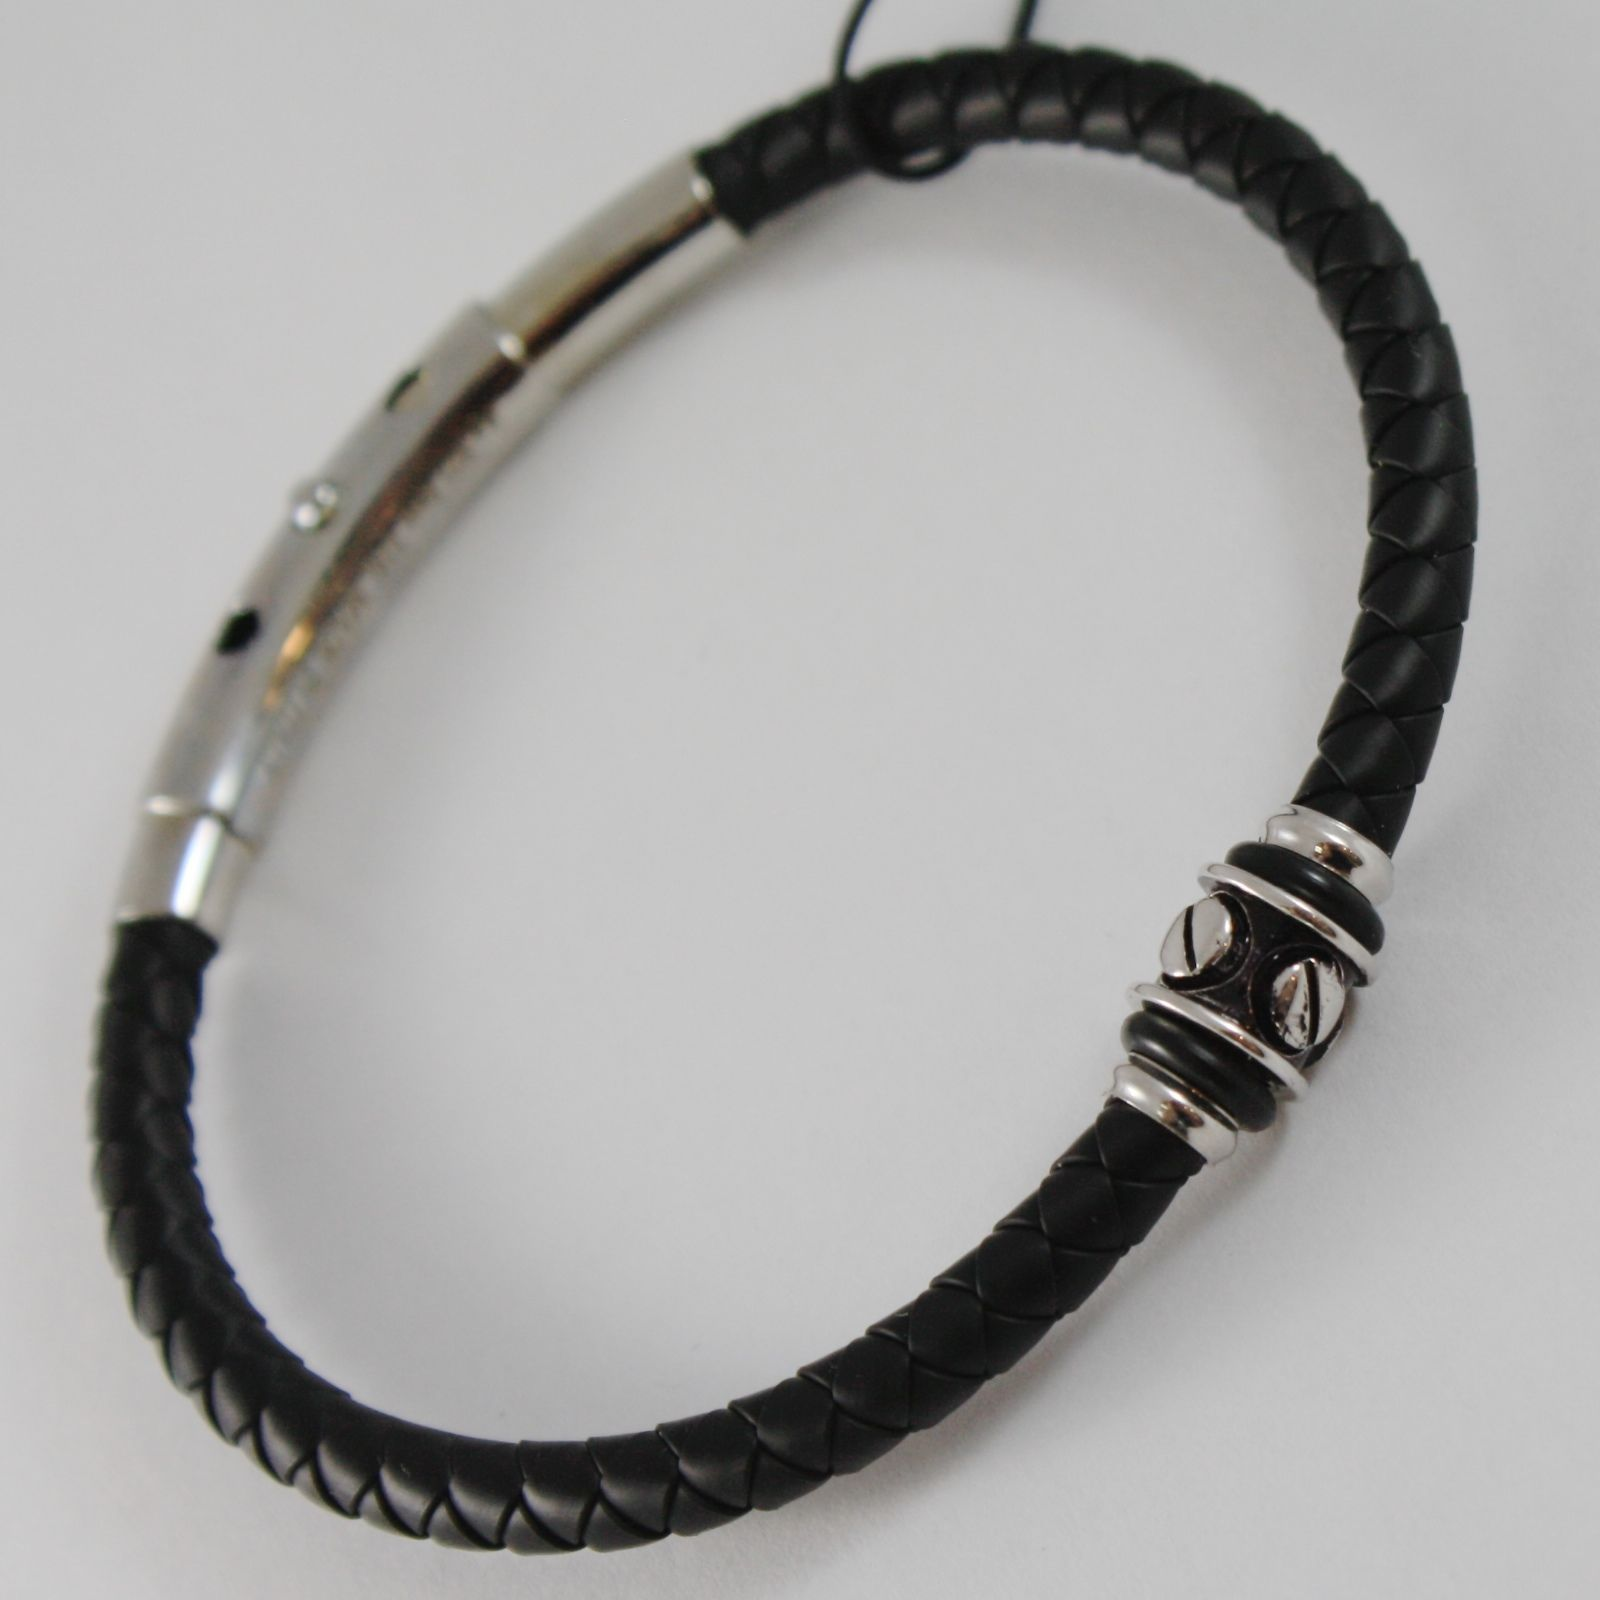 925 SILVER ZANCAN BRACELET BLACK WOVEN LEATHER, STUDDED CYLINDER MADE IN ITALY